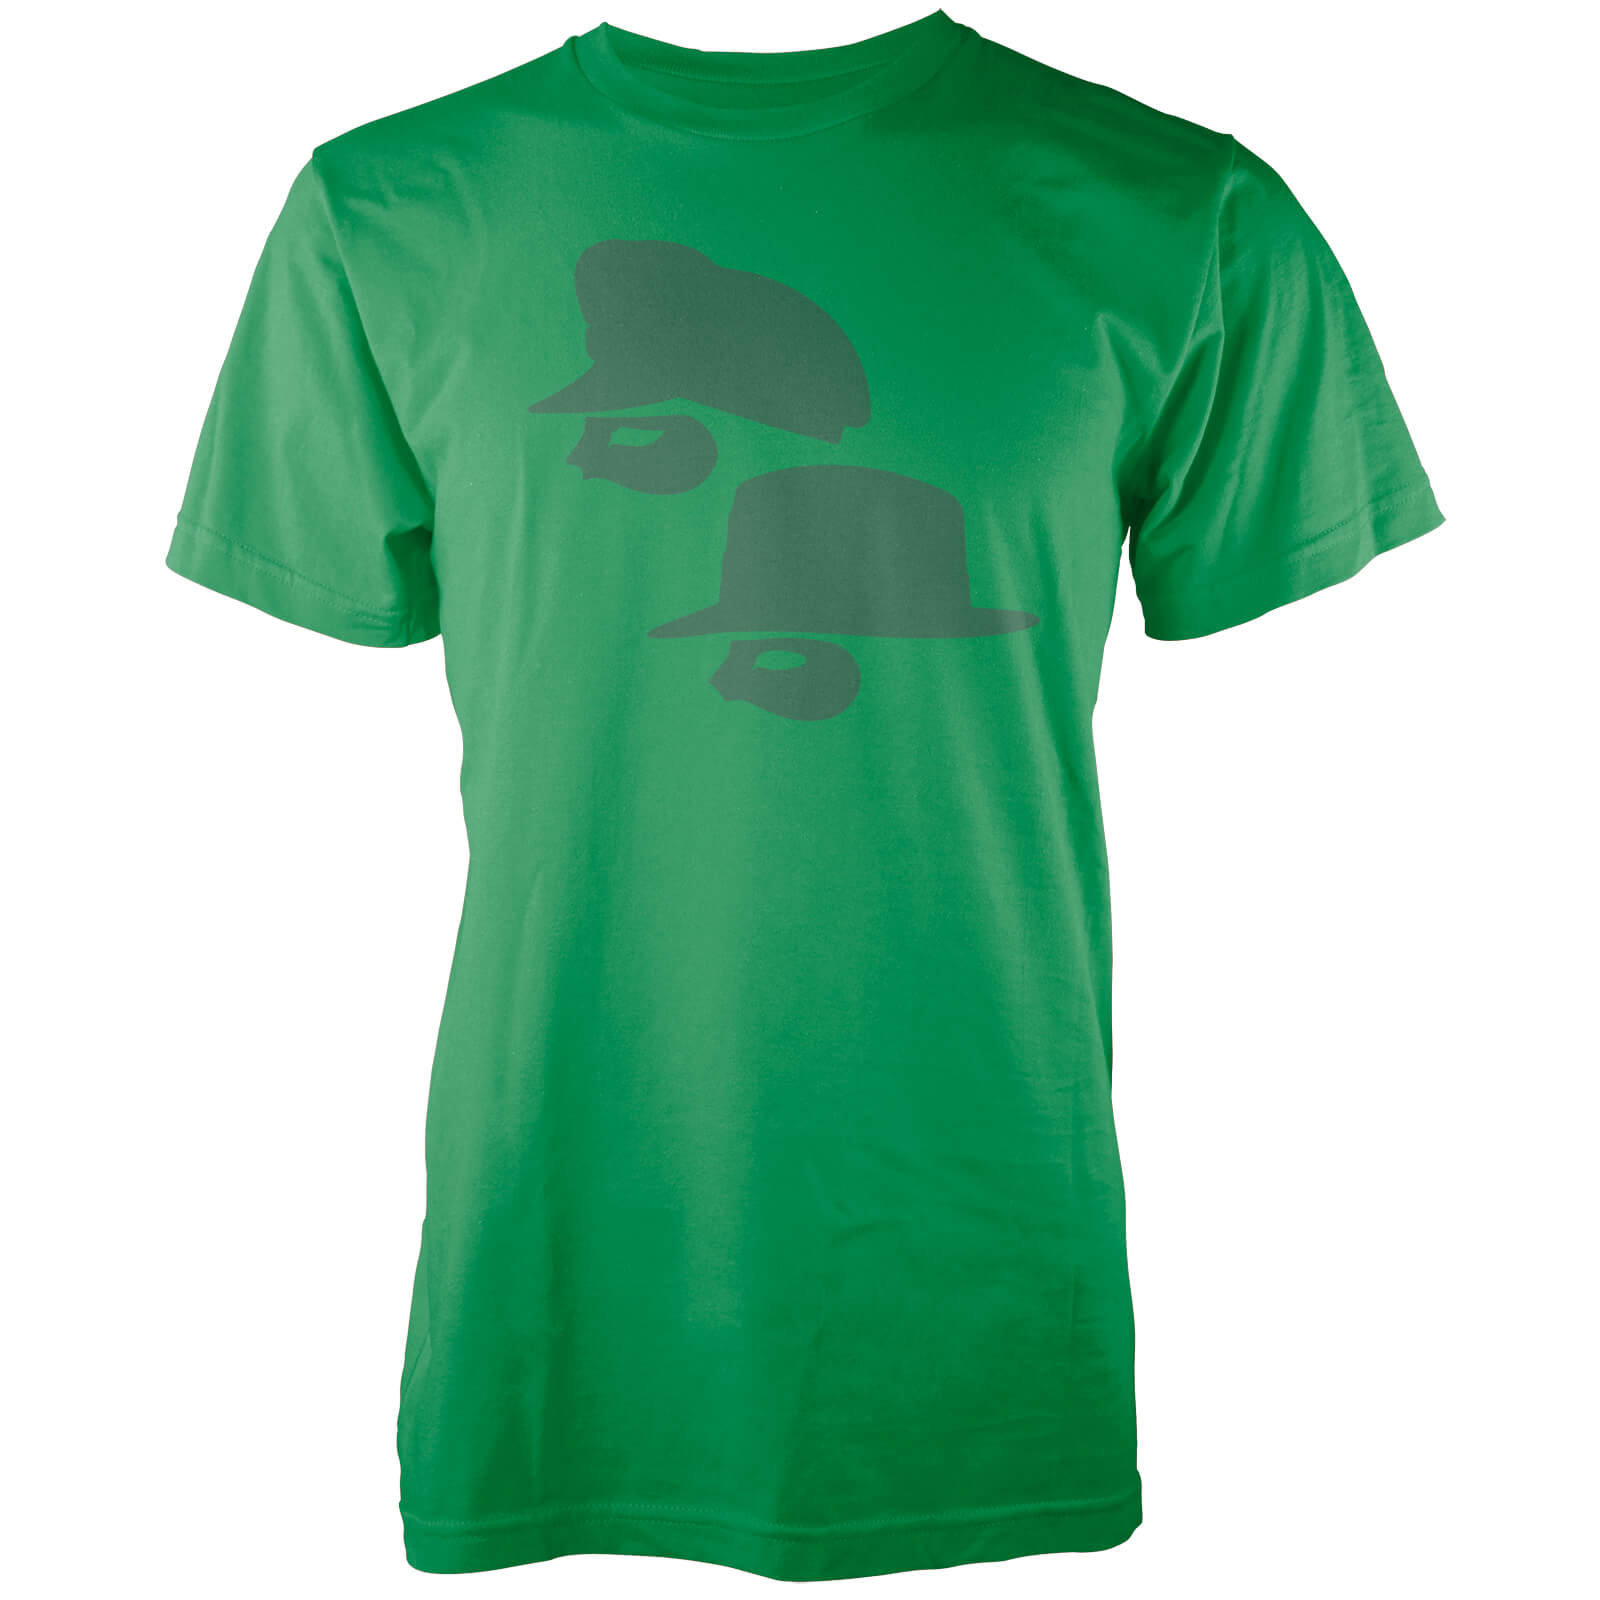 Diy Bank Robber Shirt Highway Robbery Men S Green T Shirt